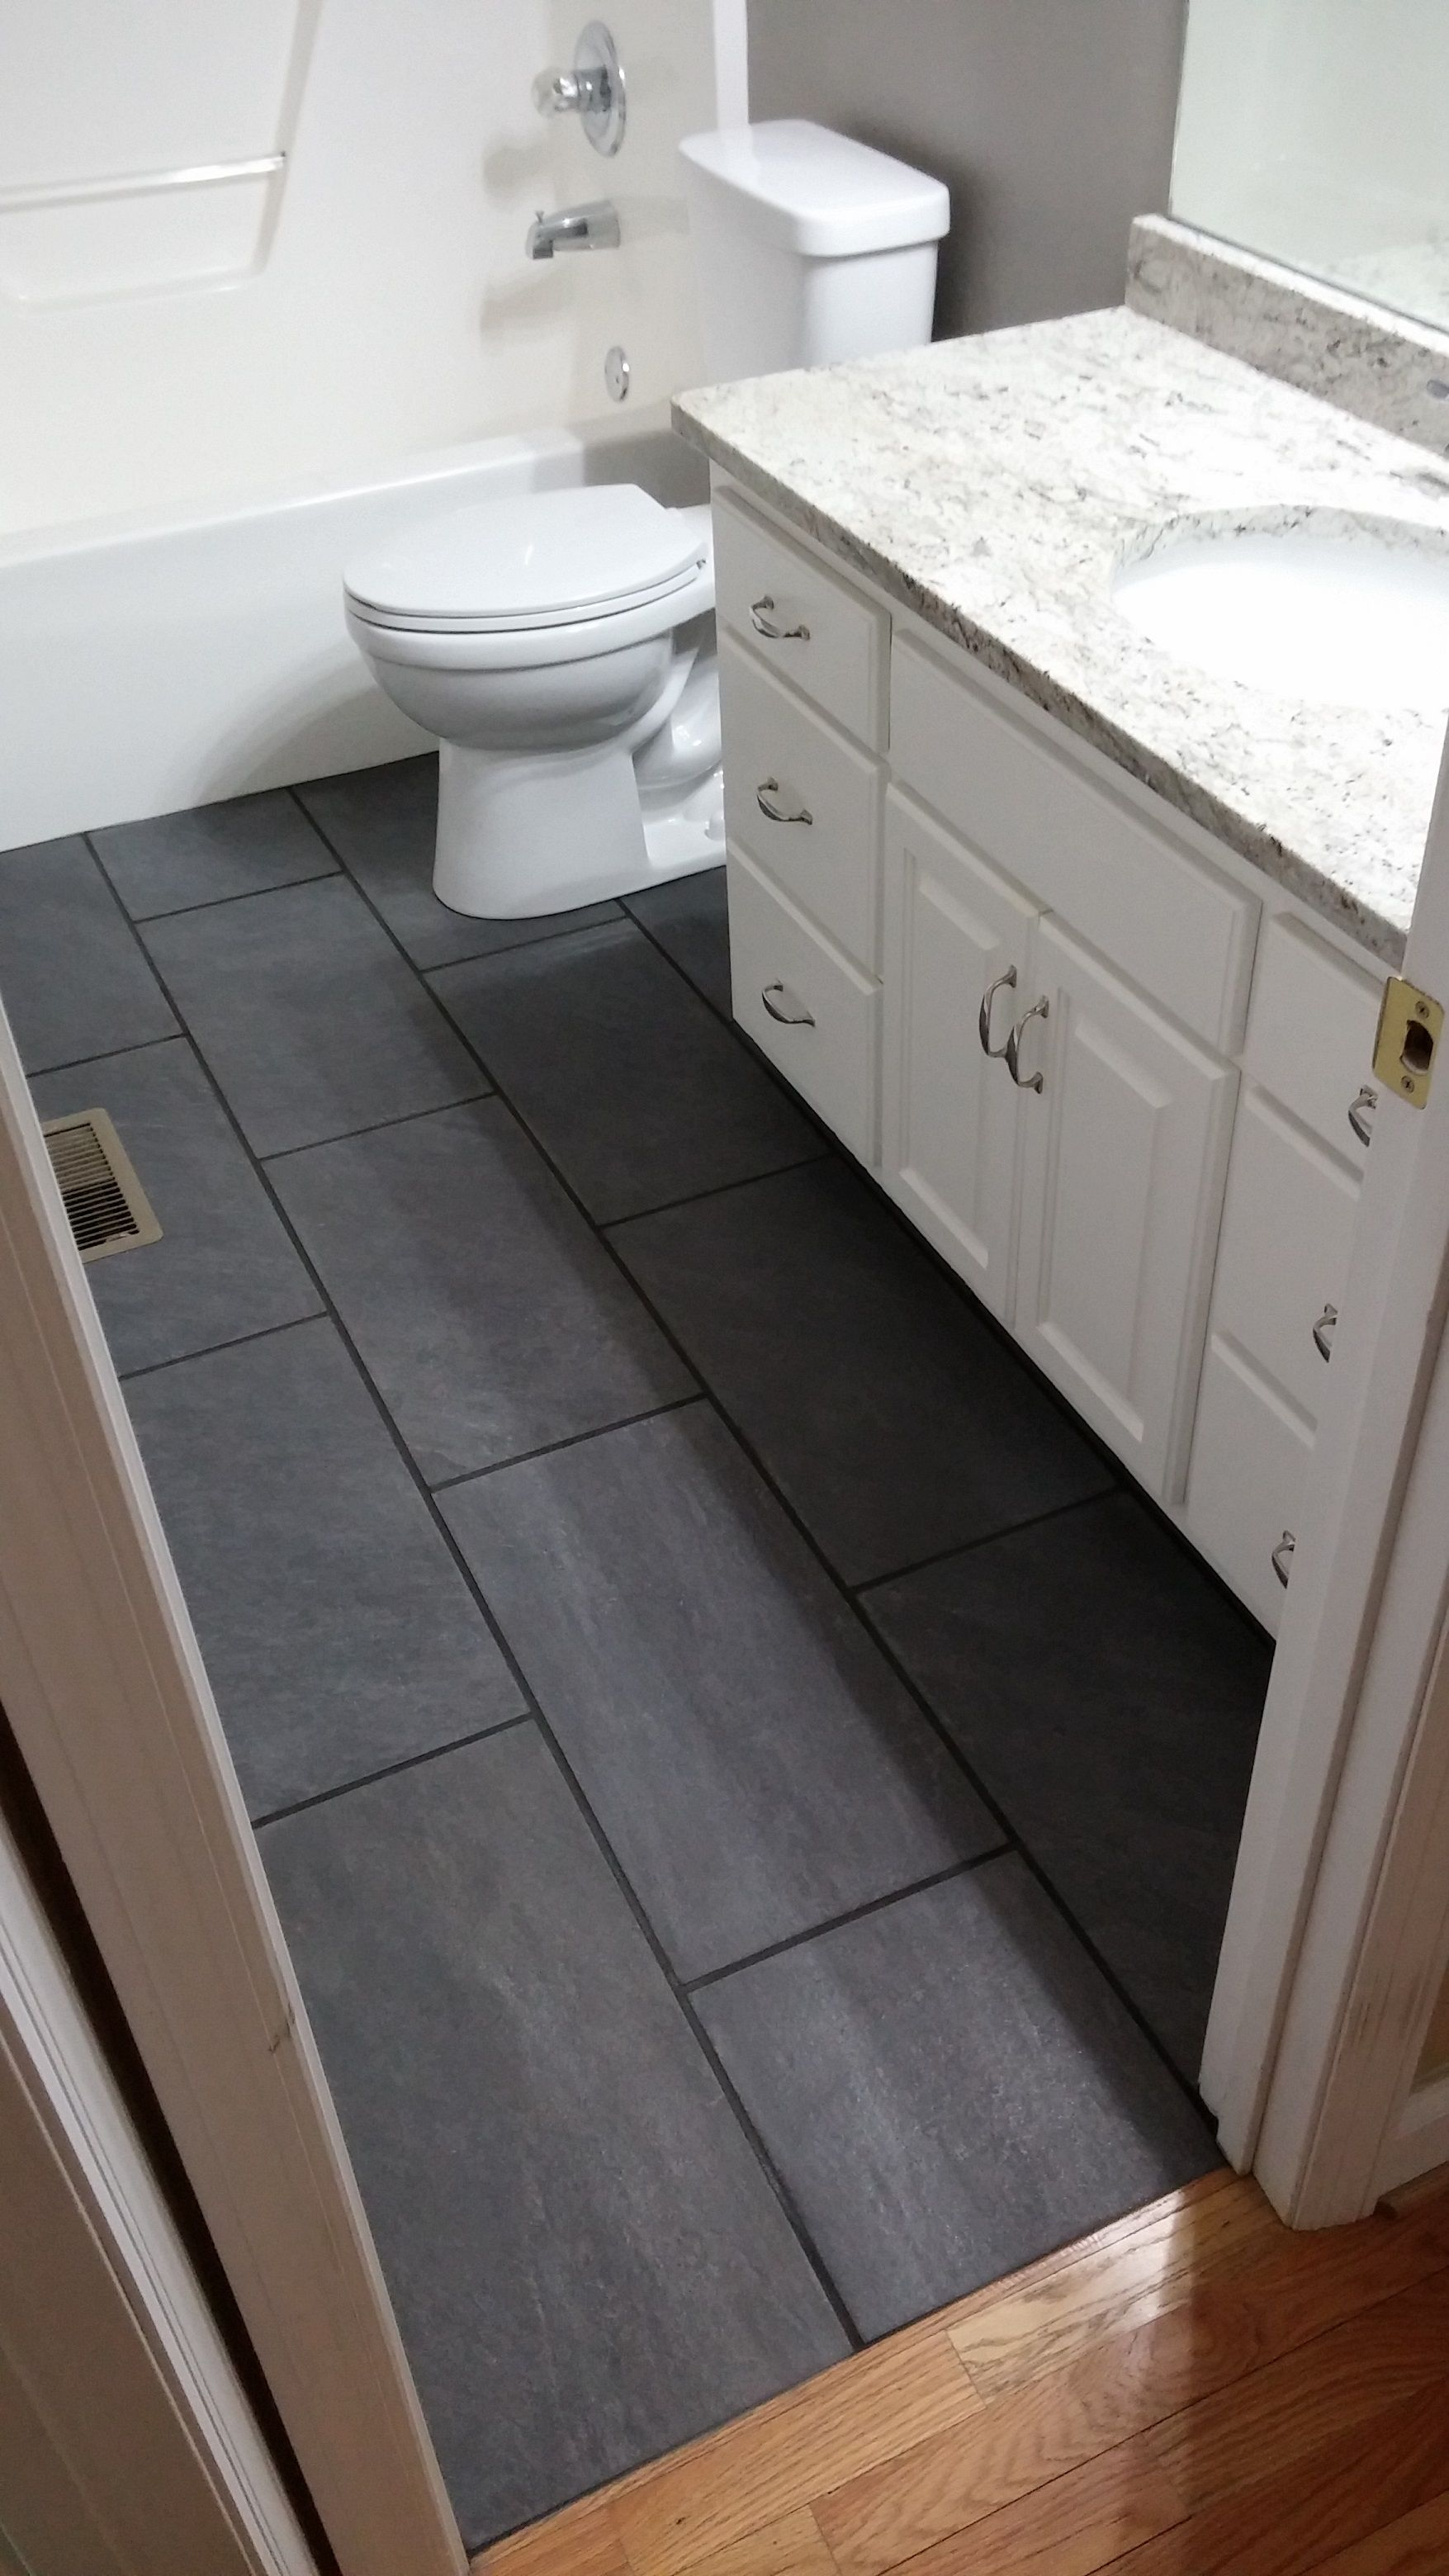 12x24 Charcoal Ceramic Tile Installed In Guest Bathroom With New Delta Prelude Toilet Ceramic Tiles Tile Installation House Tiles